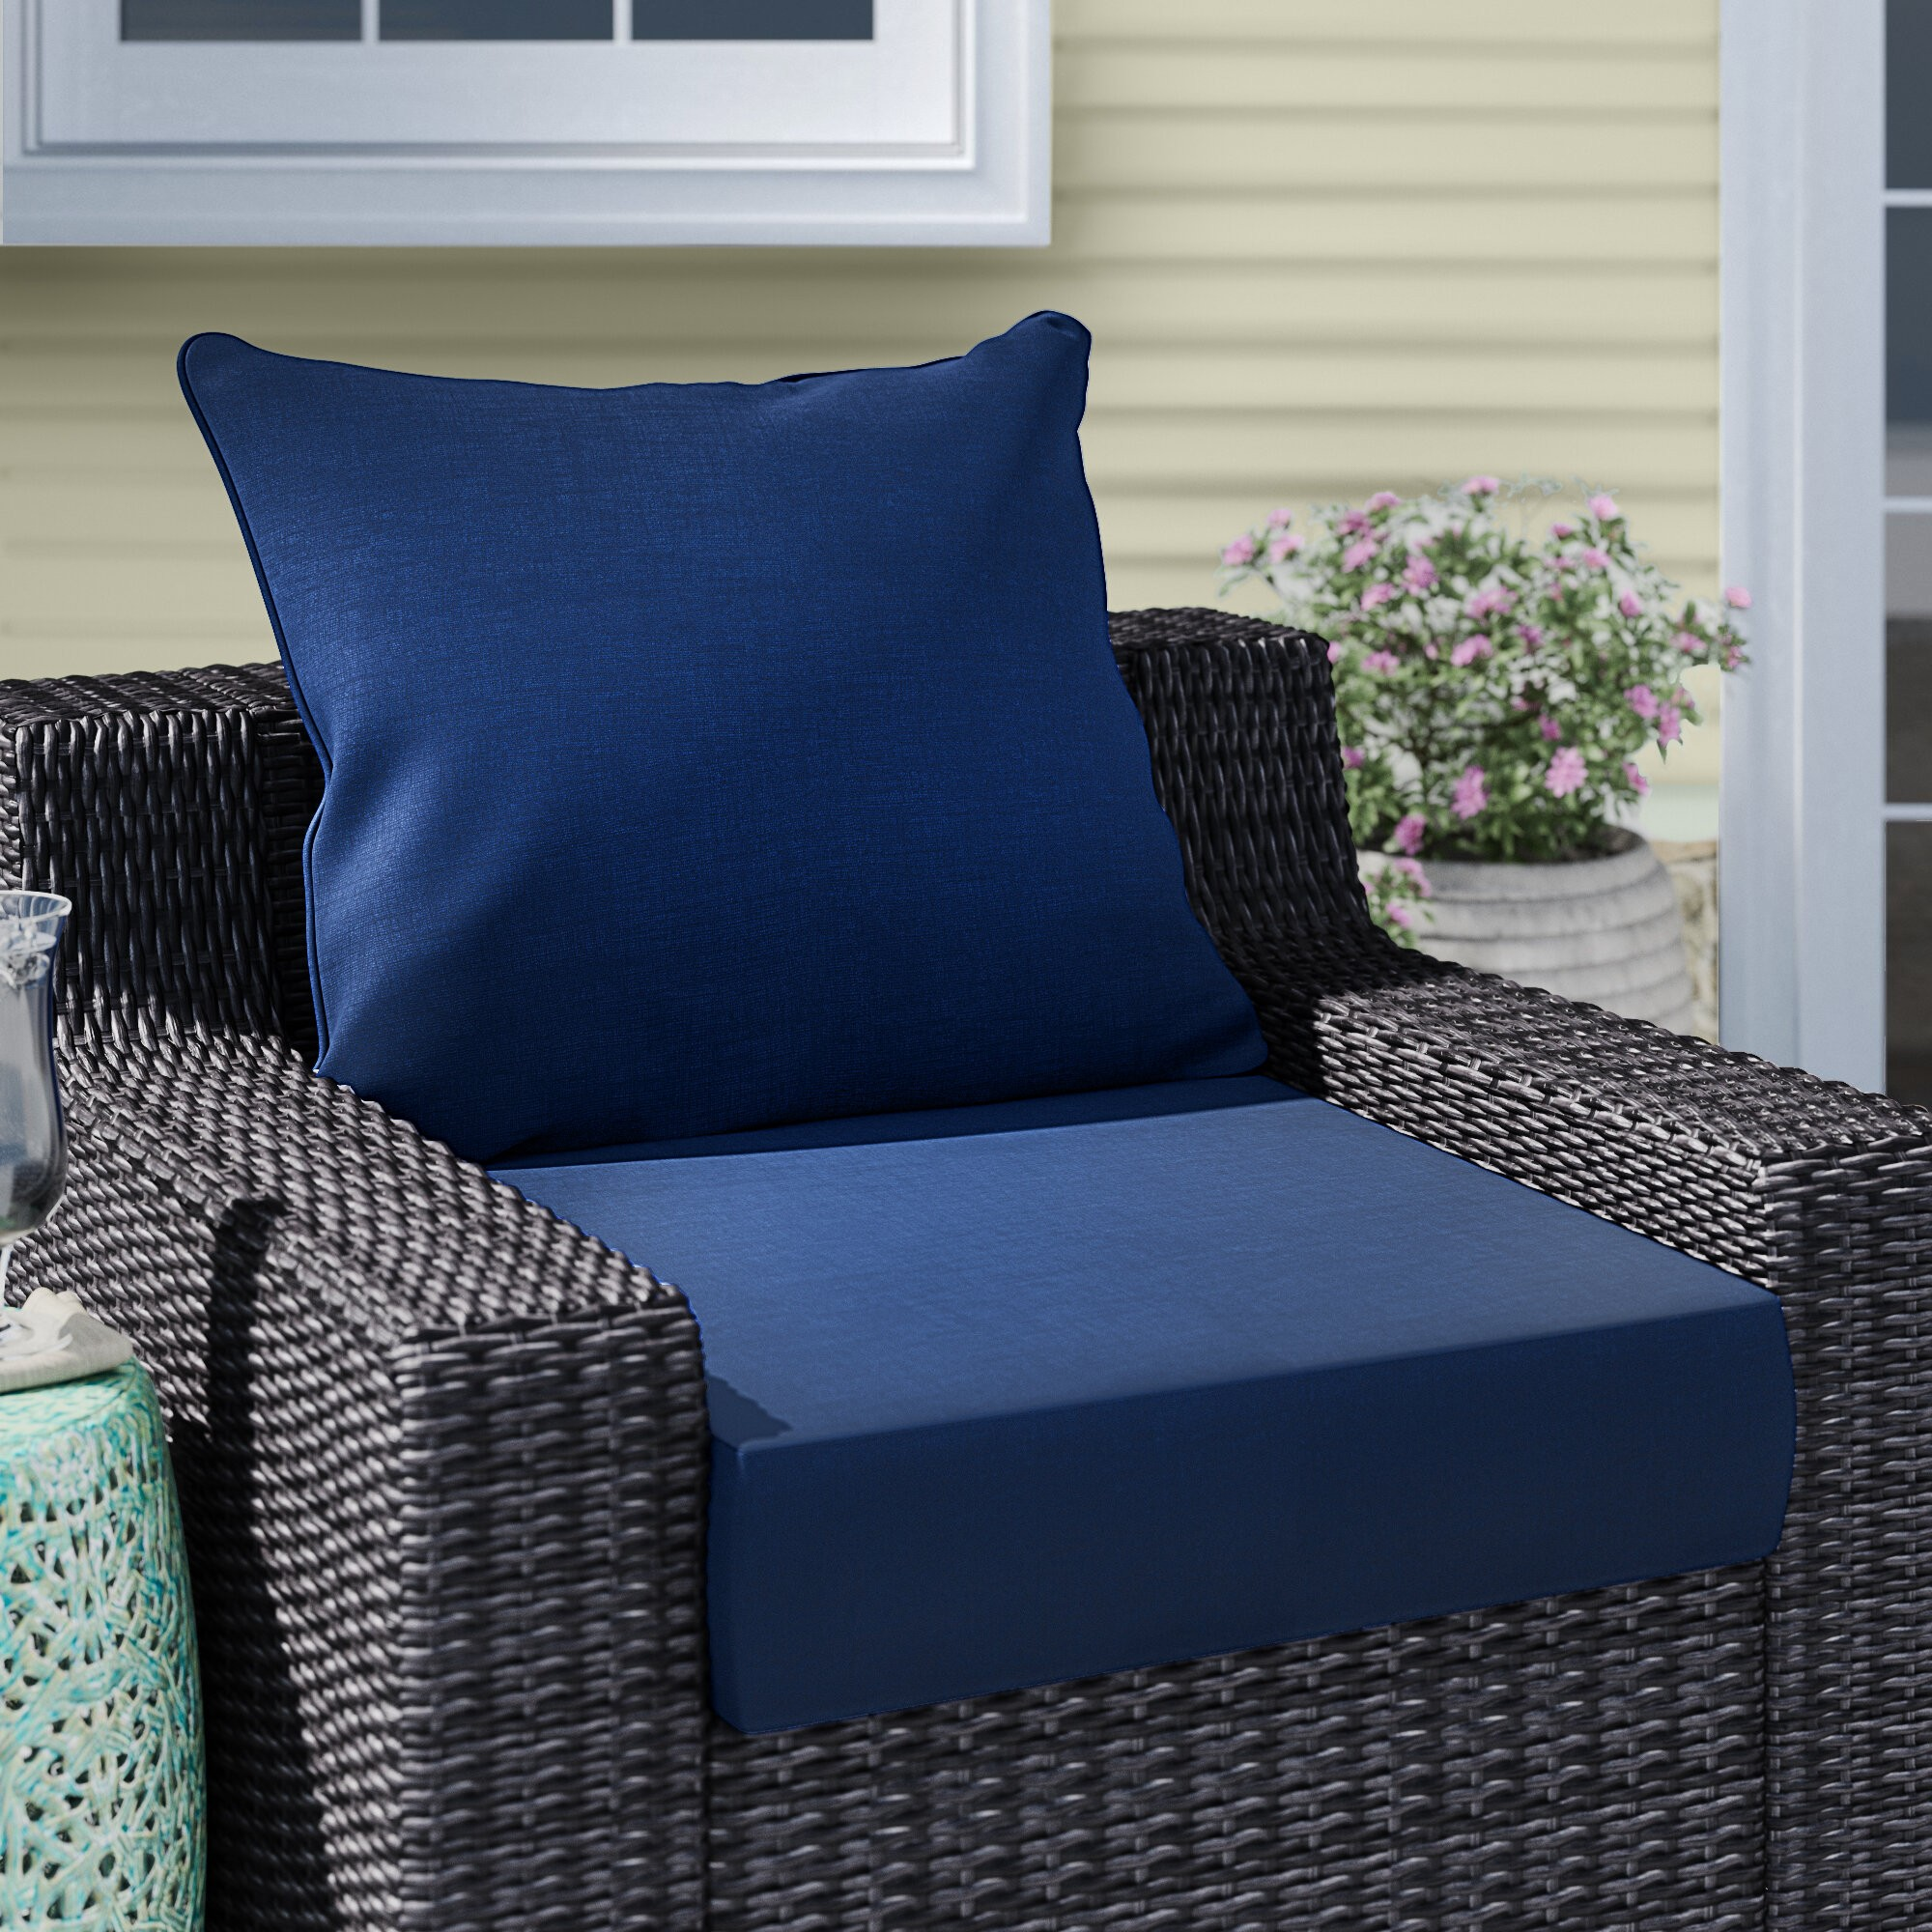 Leala Texture Outdoor Lounge Chair Cushion